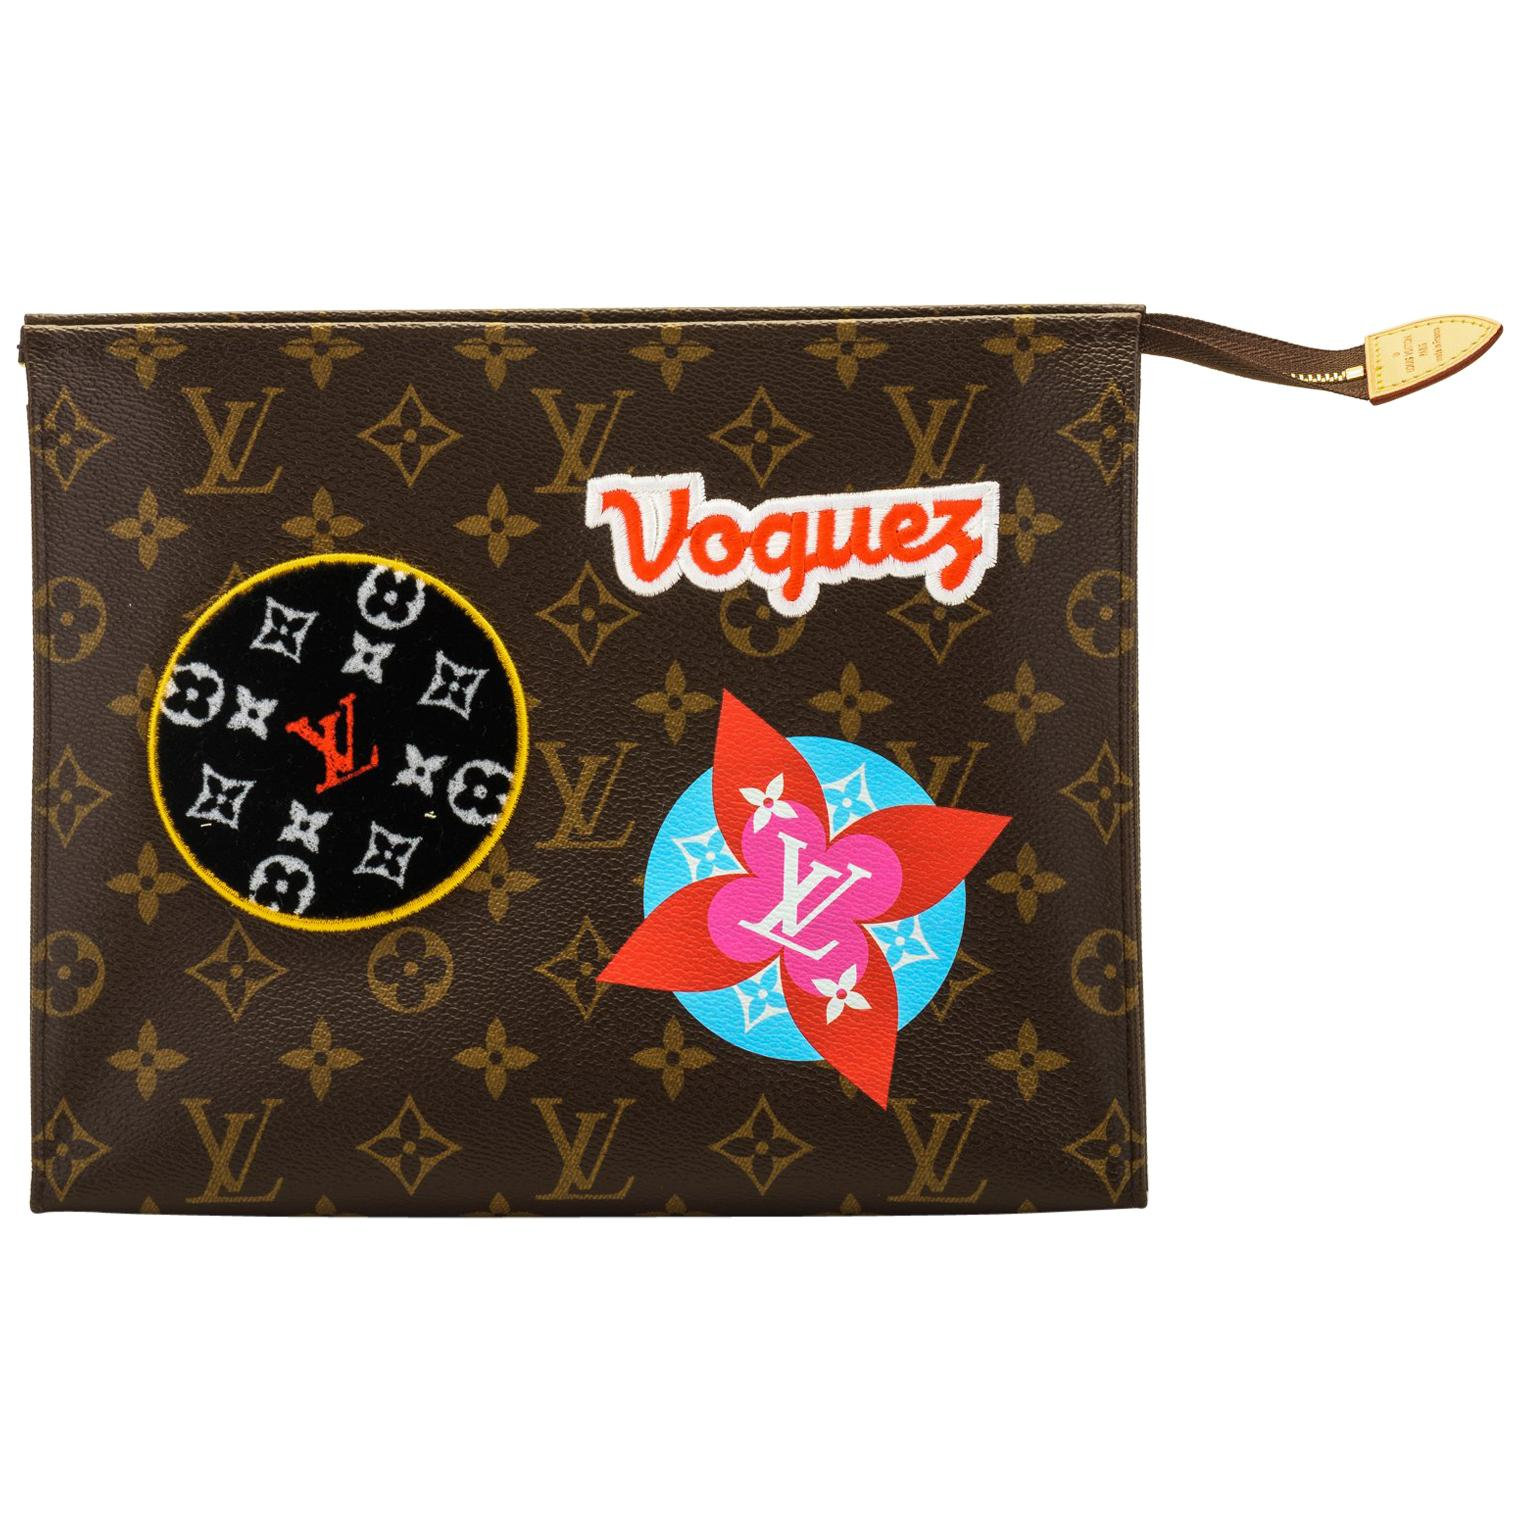 New in Box Louis Vuitton Limited Edition Stickers Pouchette Bag